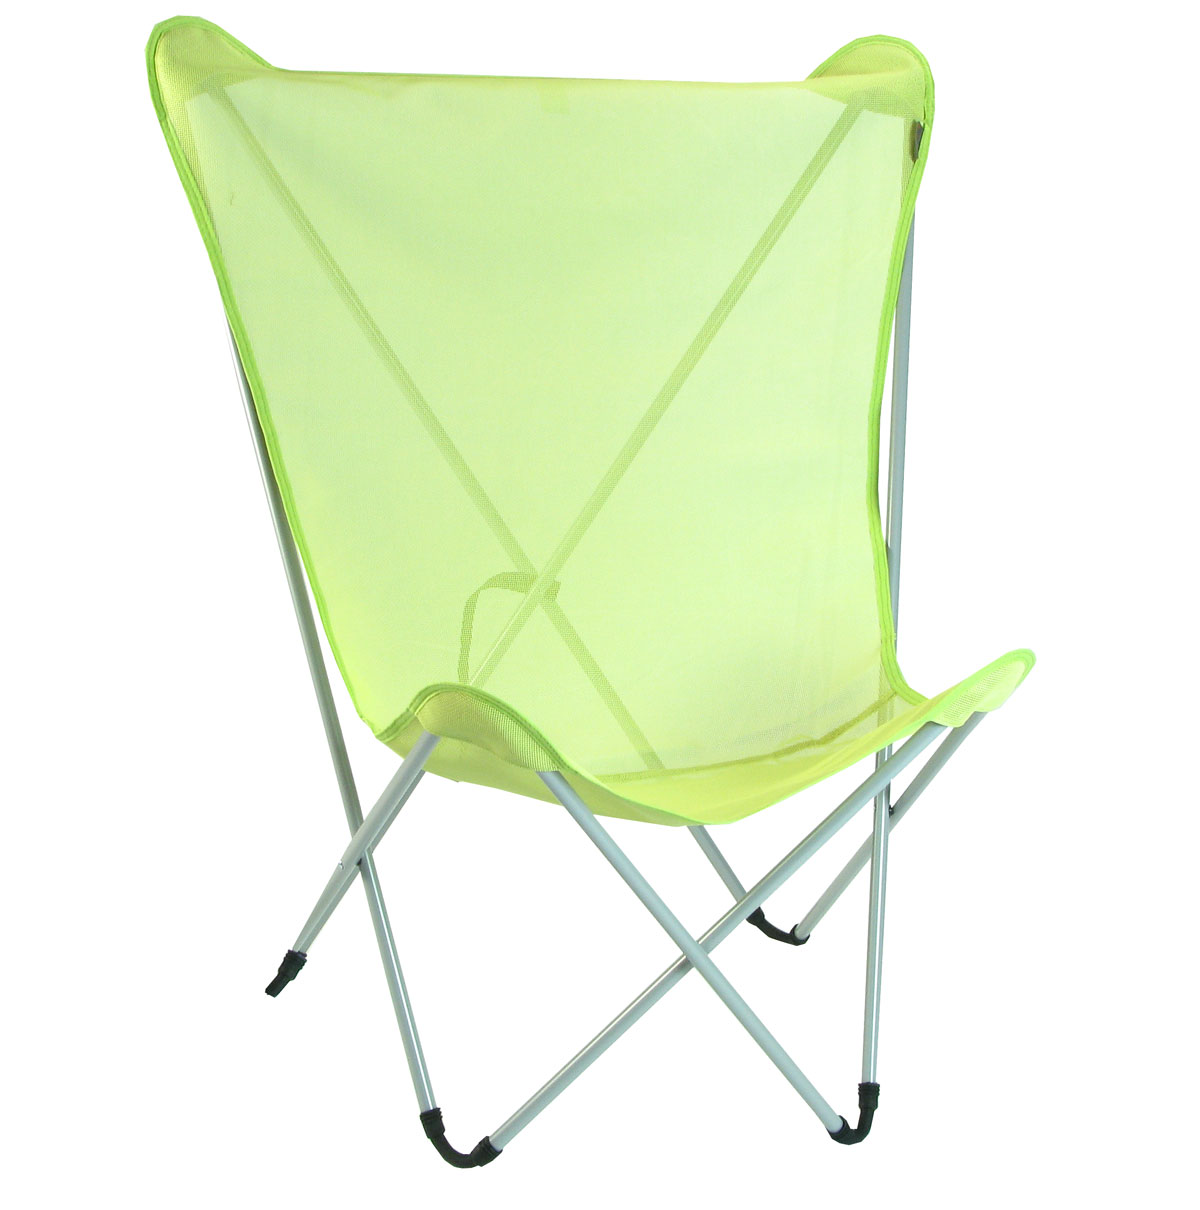 Wonderful CAMPING FURNITURE-CHAIR,SETS,TABLE,BED,LOUNGE TK94